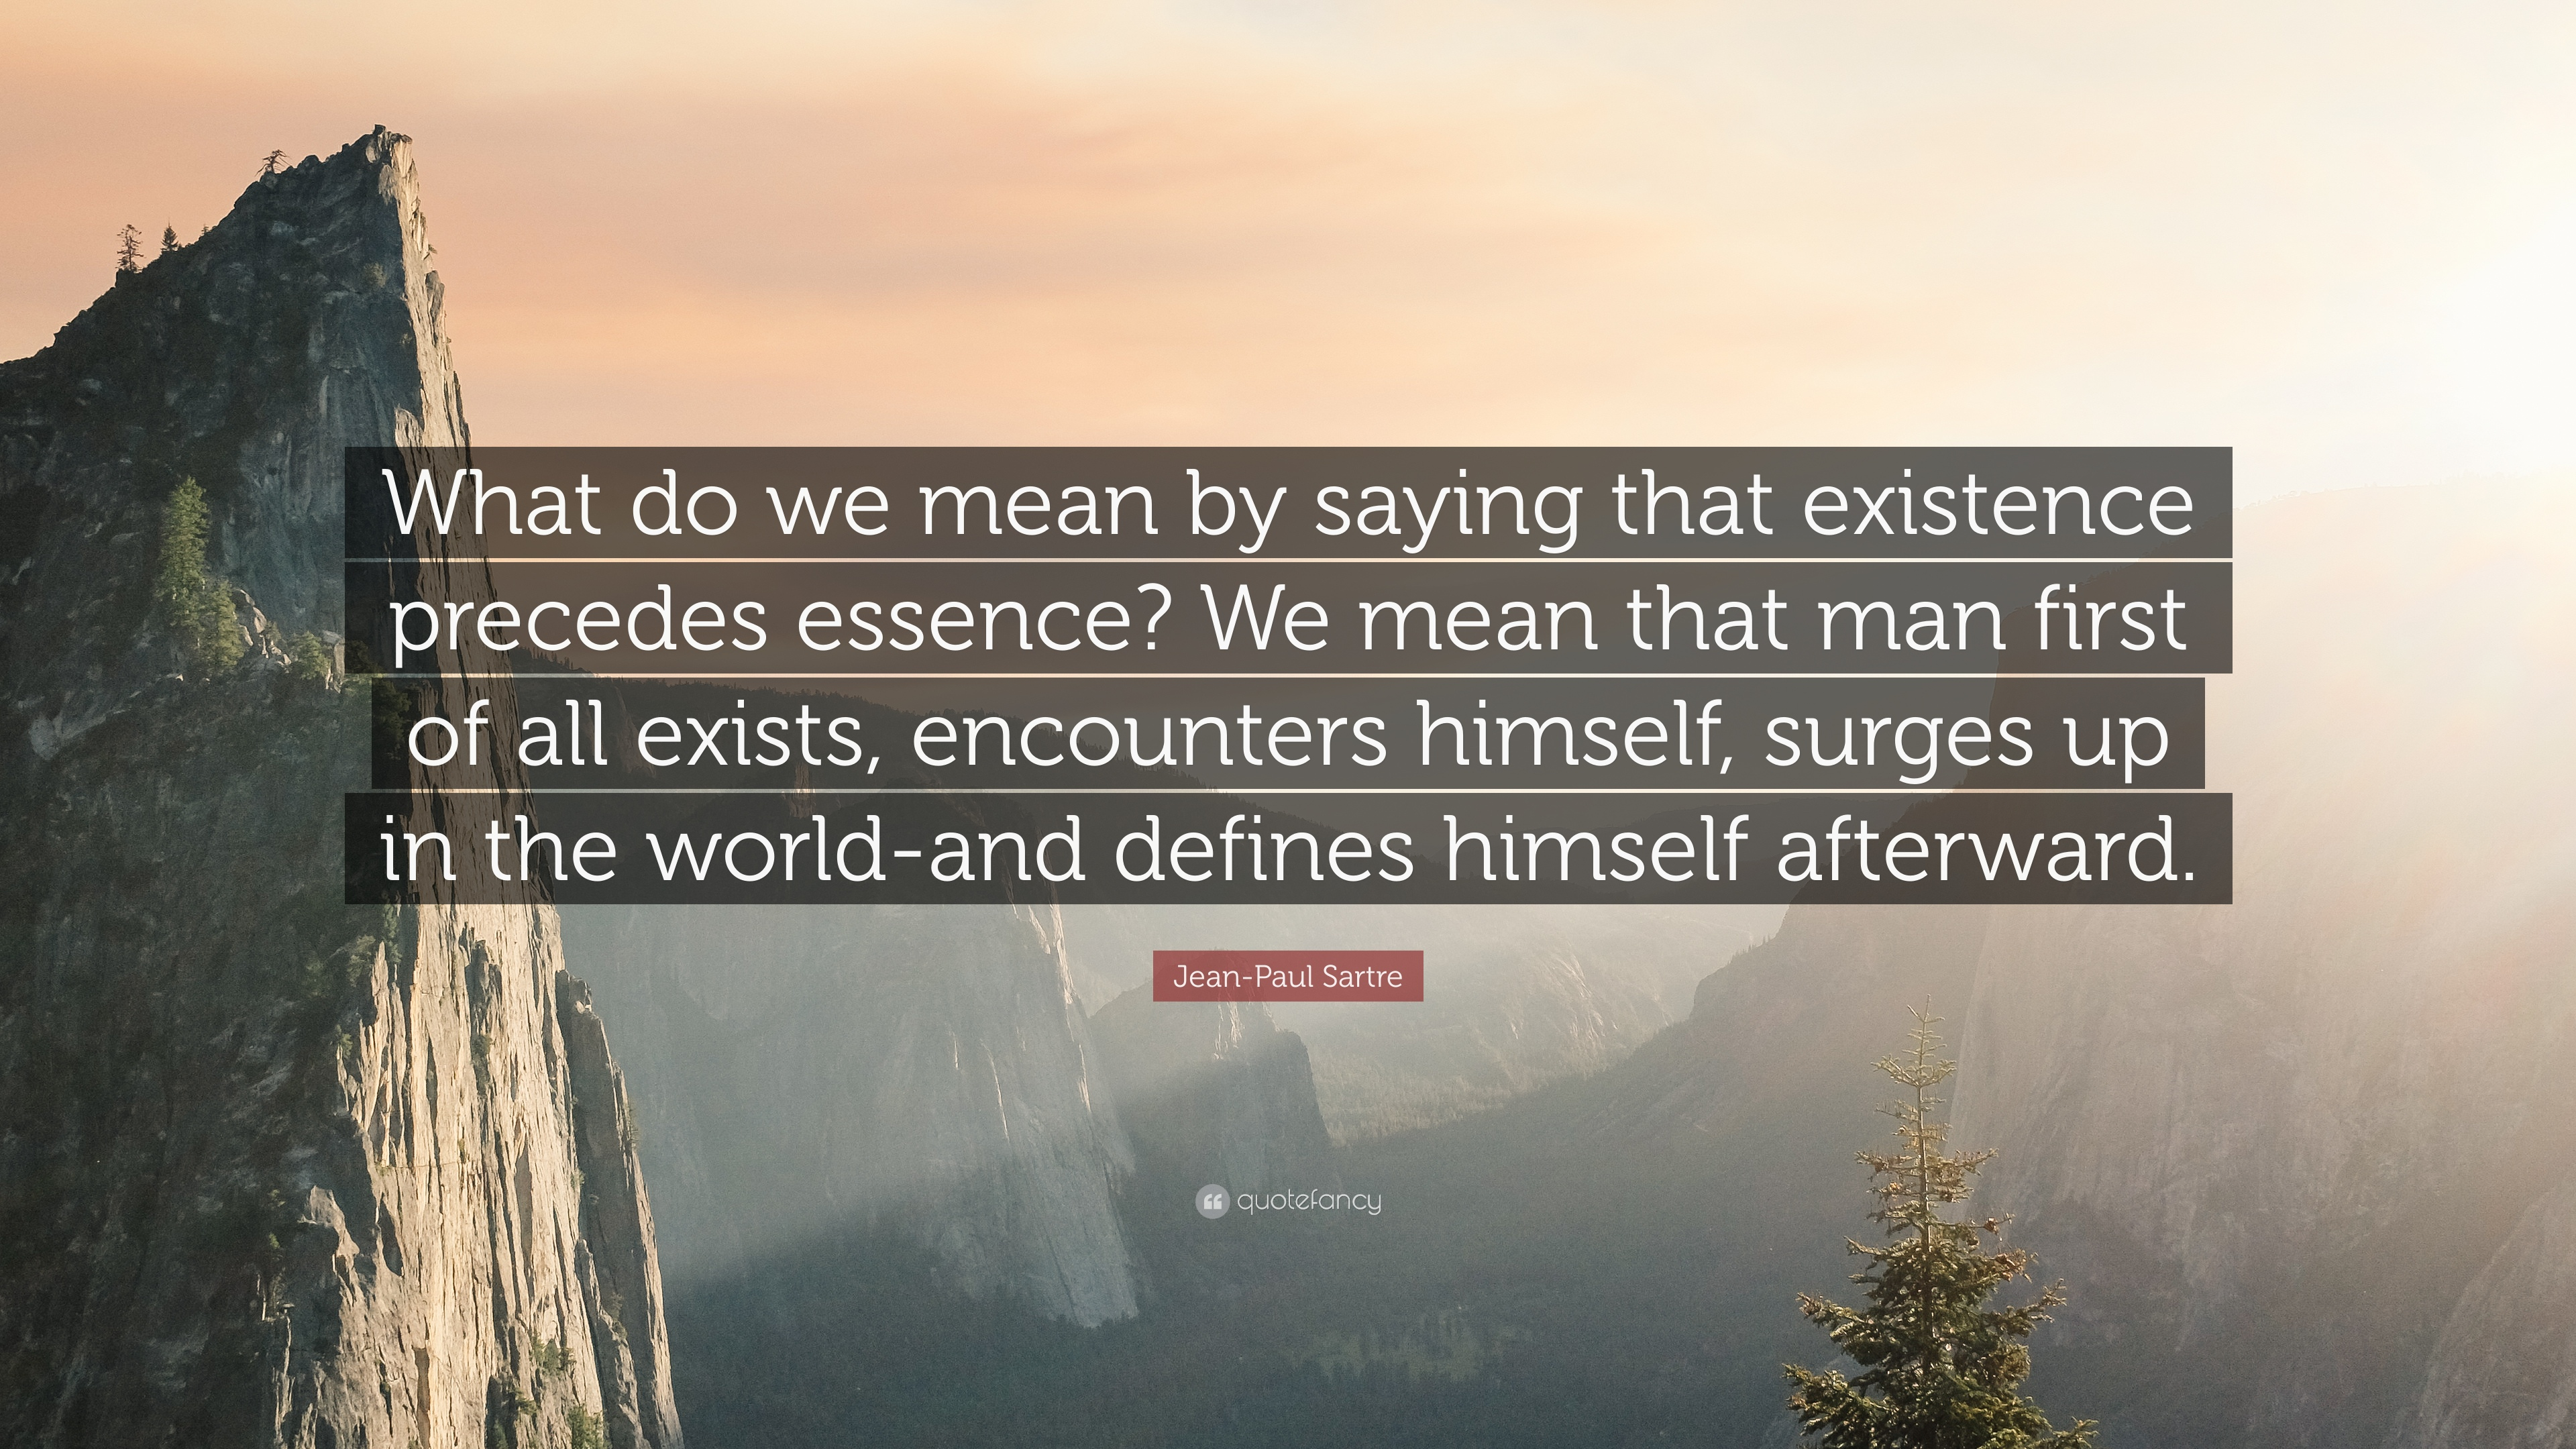 arguments of existence and essence in jean paul sartres existentialism Hegel argued that the self only exists by being recognized by another being   according to jean-paul sartre existentialism is a philosophy for the superman   (ie existence) and then creates his essence—ie existence precedes essence.